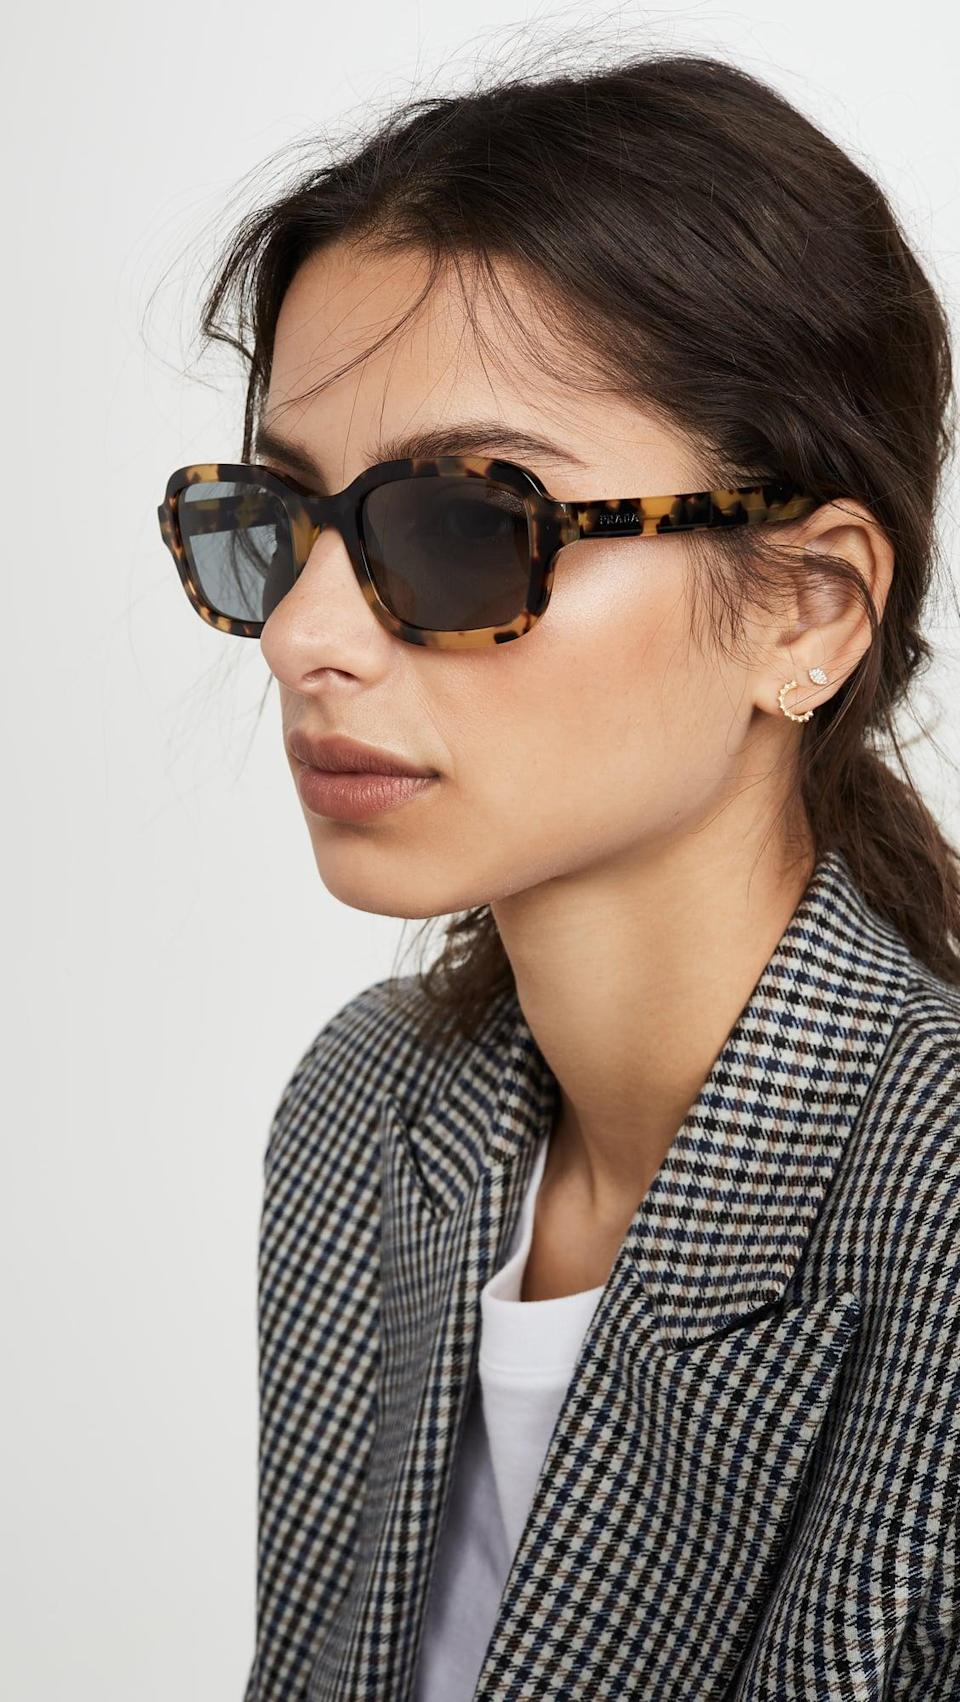 <p>These <span>Prada Rectangular Sunglasses</span> ($350) have been on our wishlist for a while now. They're the perfect mix of retro and classic, and we love them so much.</p>